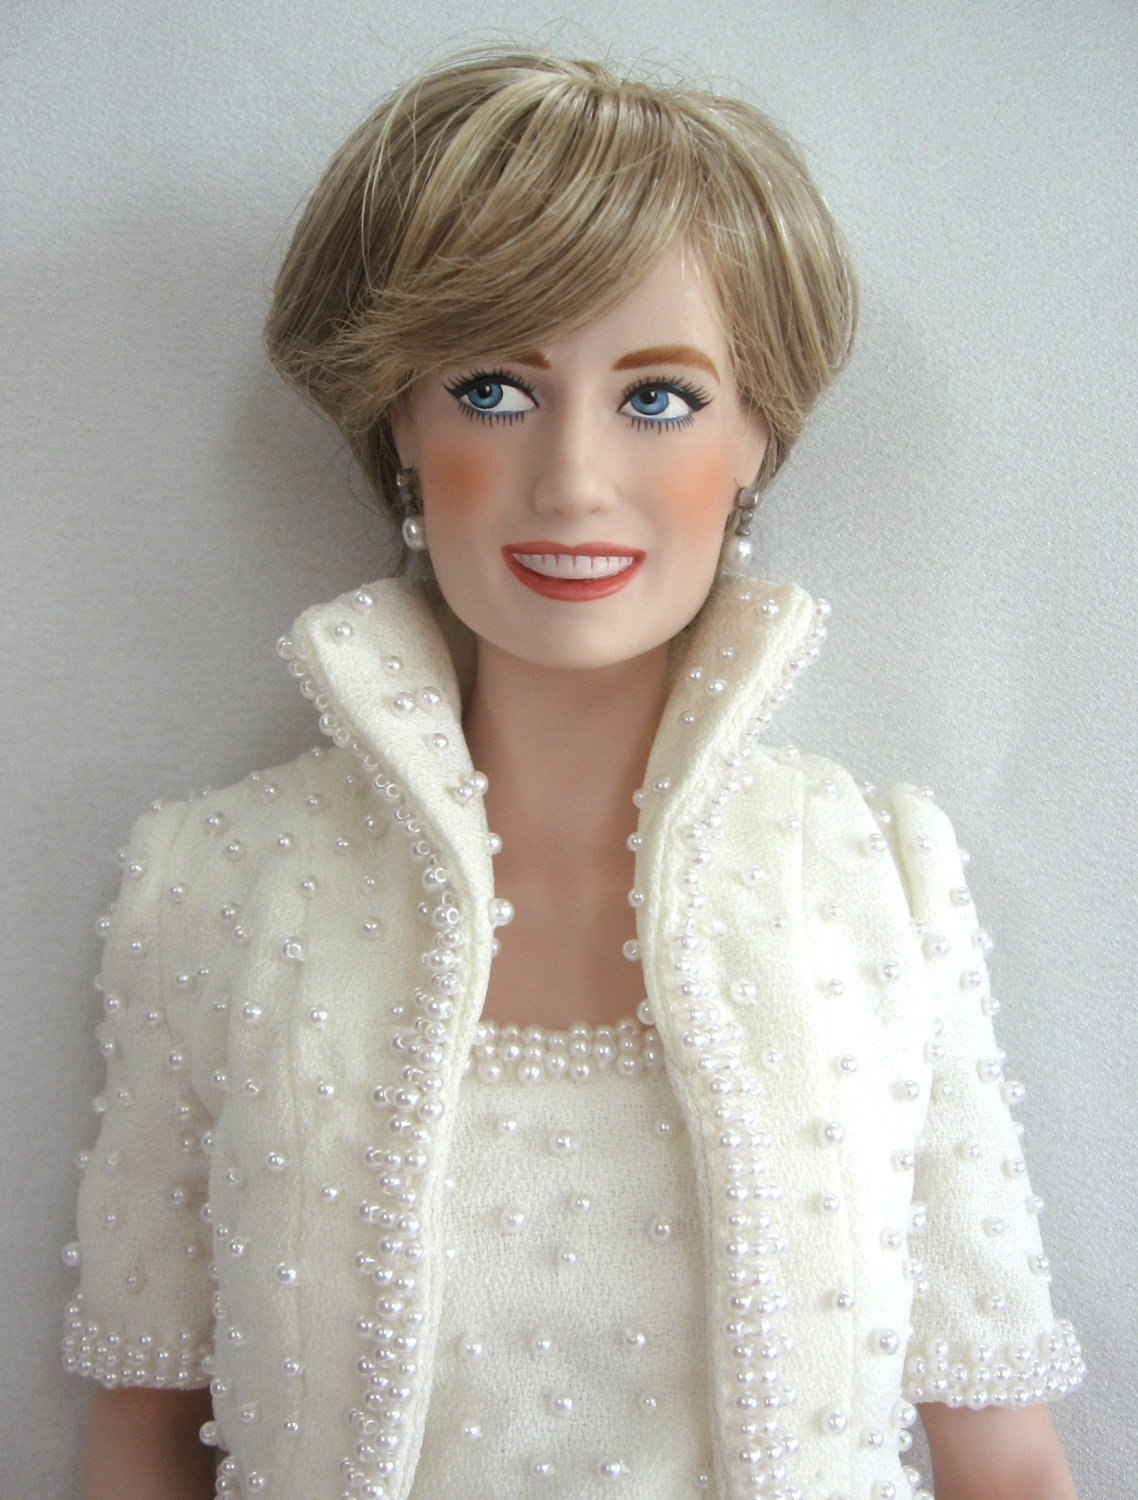 Diana Princess Of Wales Porcelain Doll Franklin Mint 1997